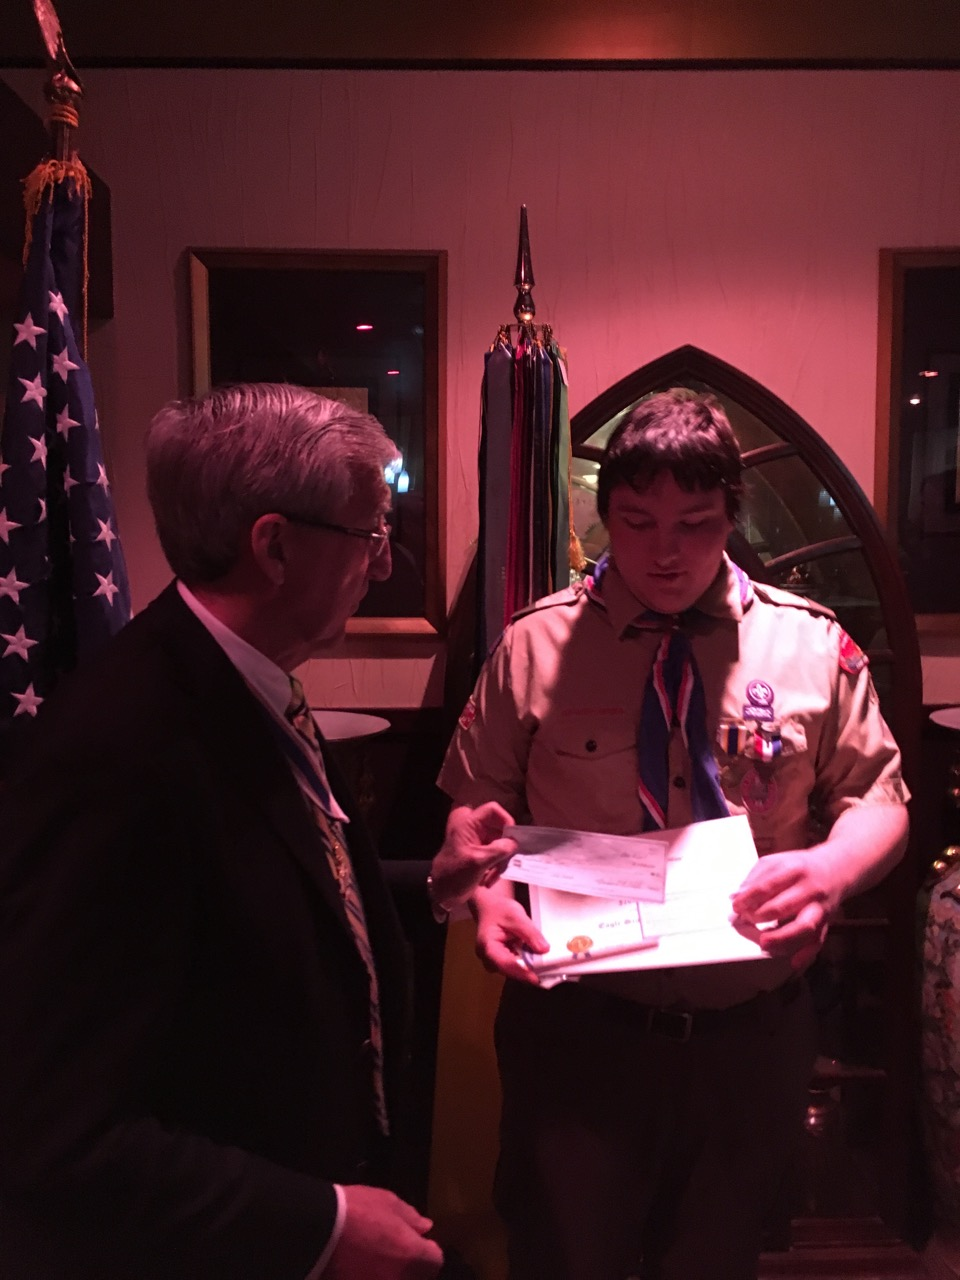 Eagle Scout Award recipient, Noah Bieker, receives his award check, medal and certificate from President Ken Hawkins